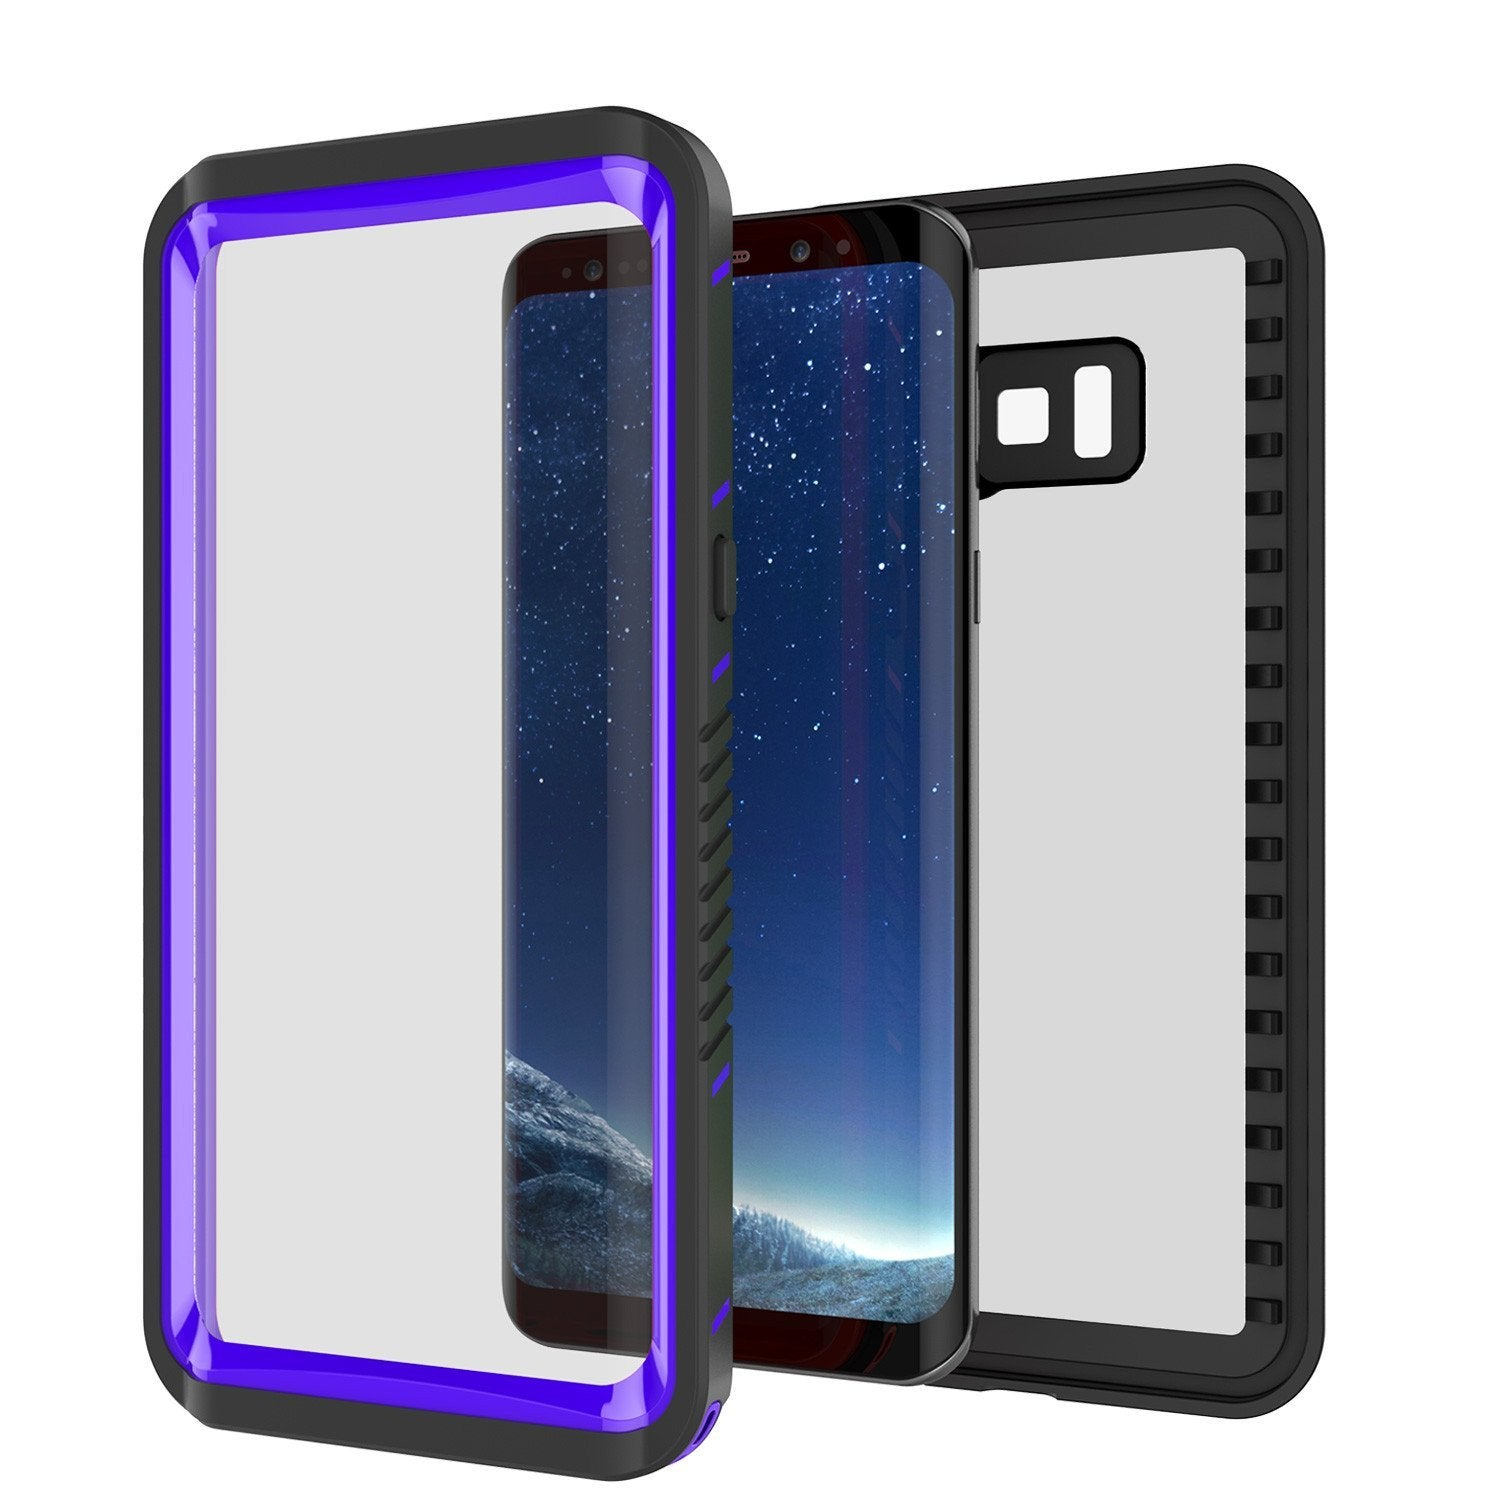 Galaxy S8 PLUS Case, Punkcase [Extreme Series] Armor Purple Cover